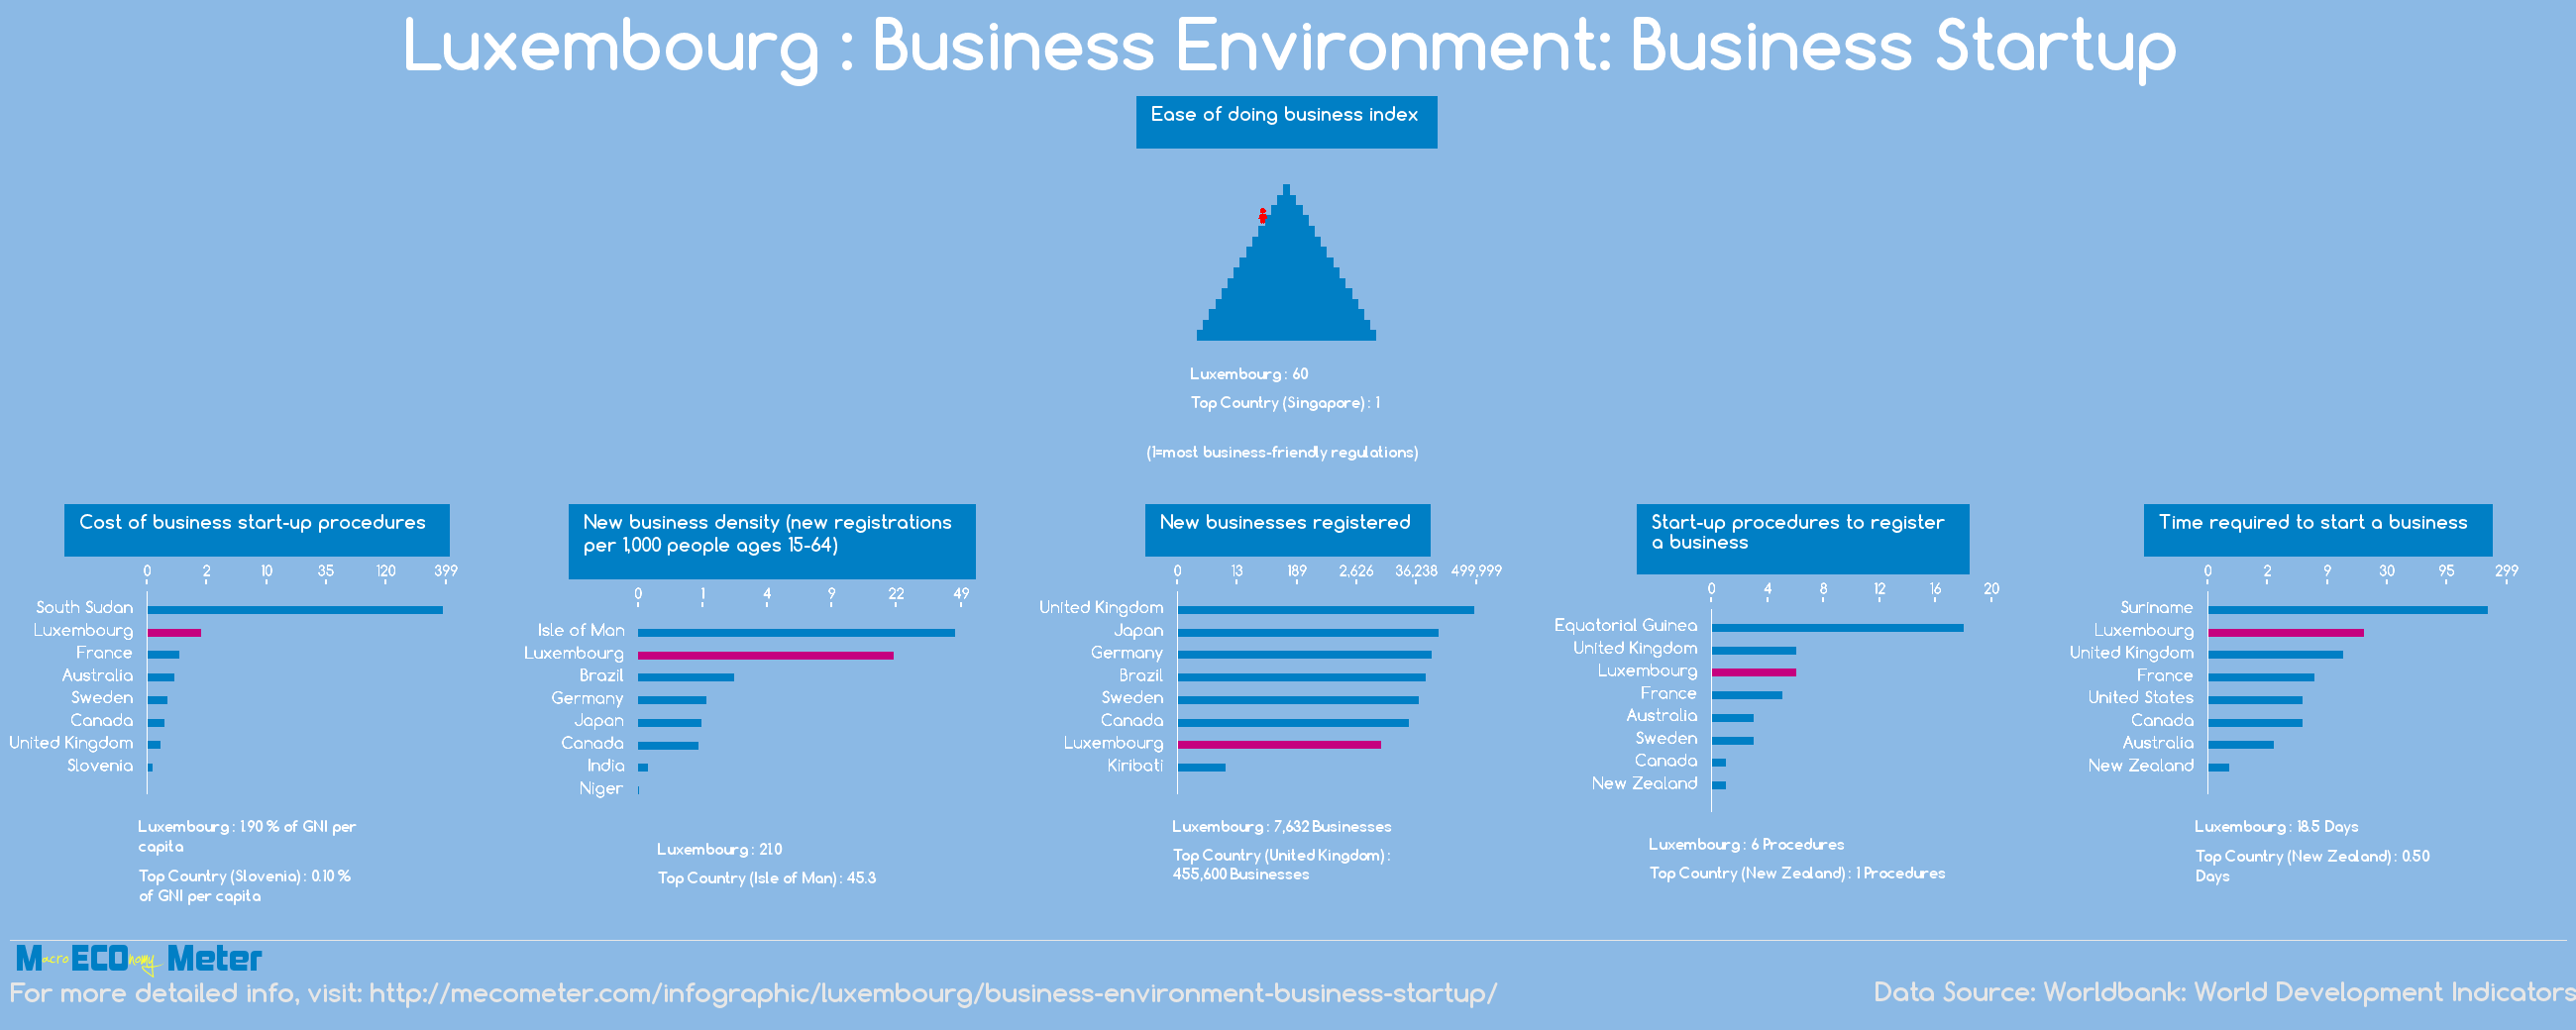 Luxembourg : Business Environment: Business Startup